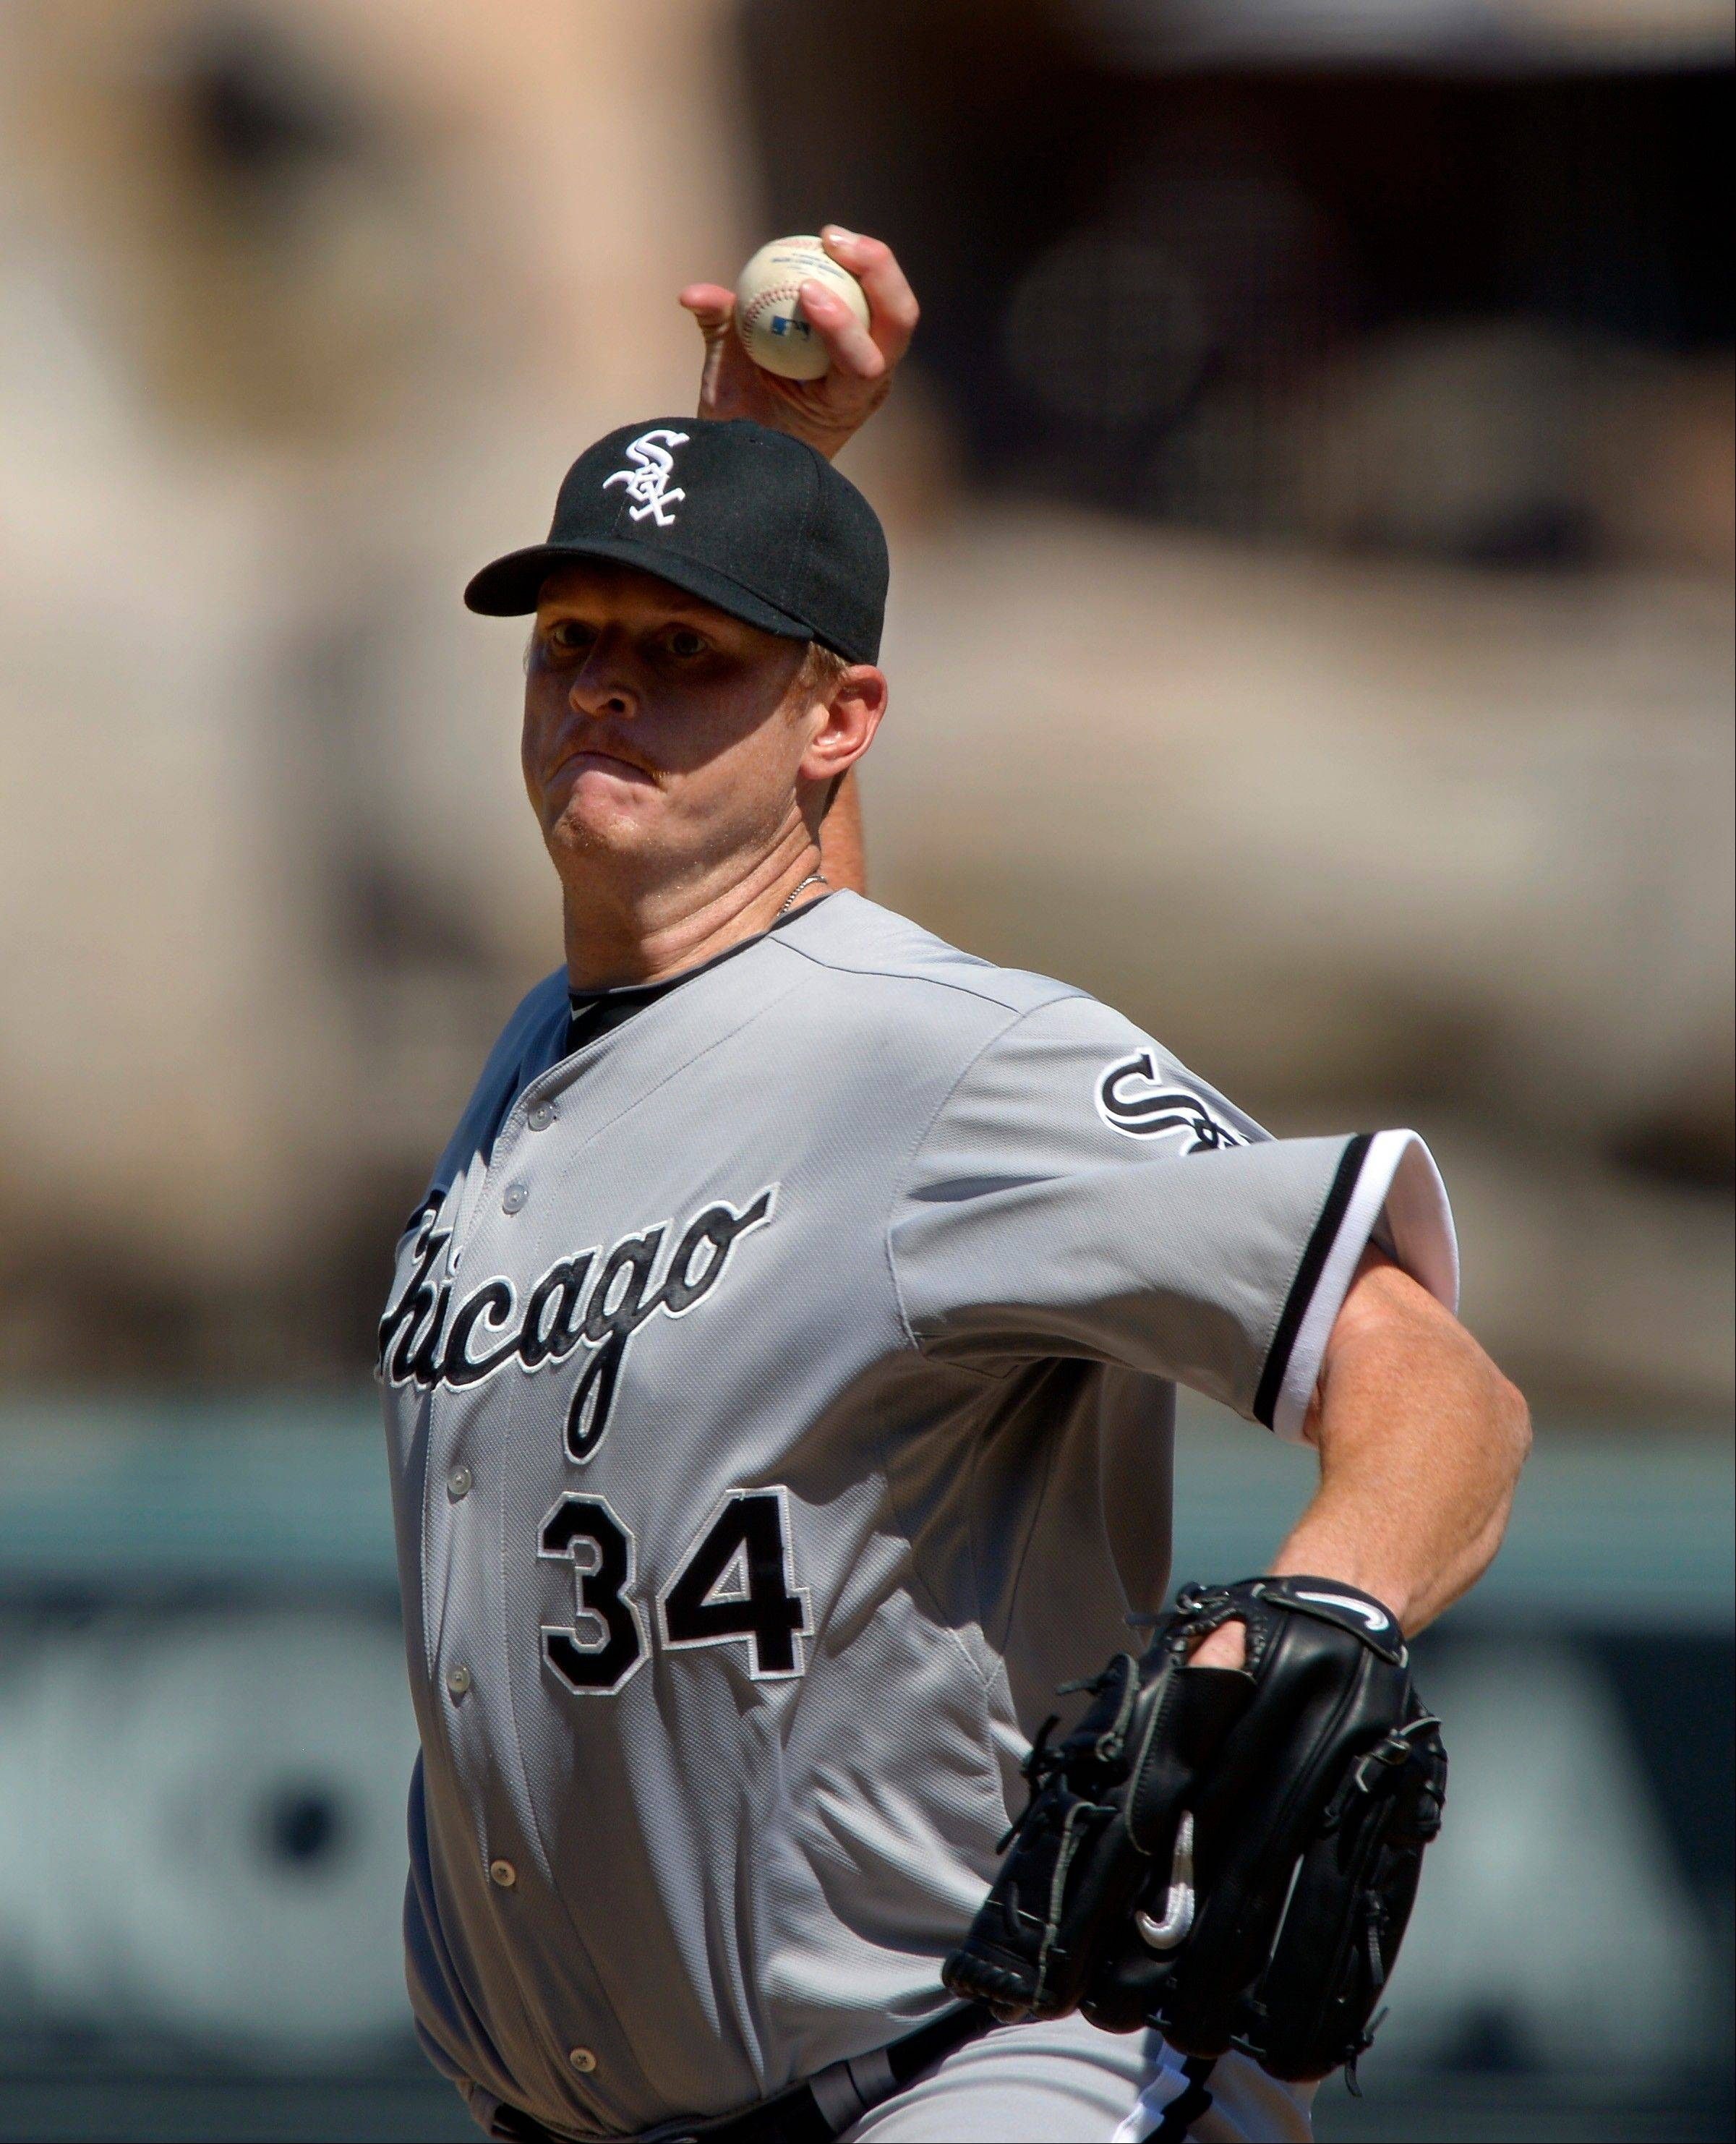 White Sox starting pitcher Gavin Floyd gave up four runs and seven hits Sunday in a loss to the Angels in Anaheim, Calif.